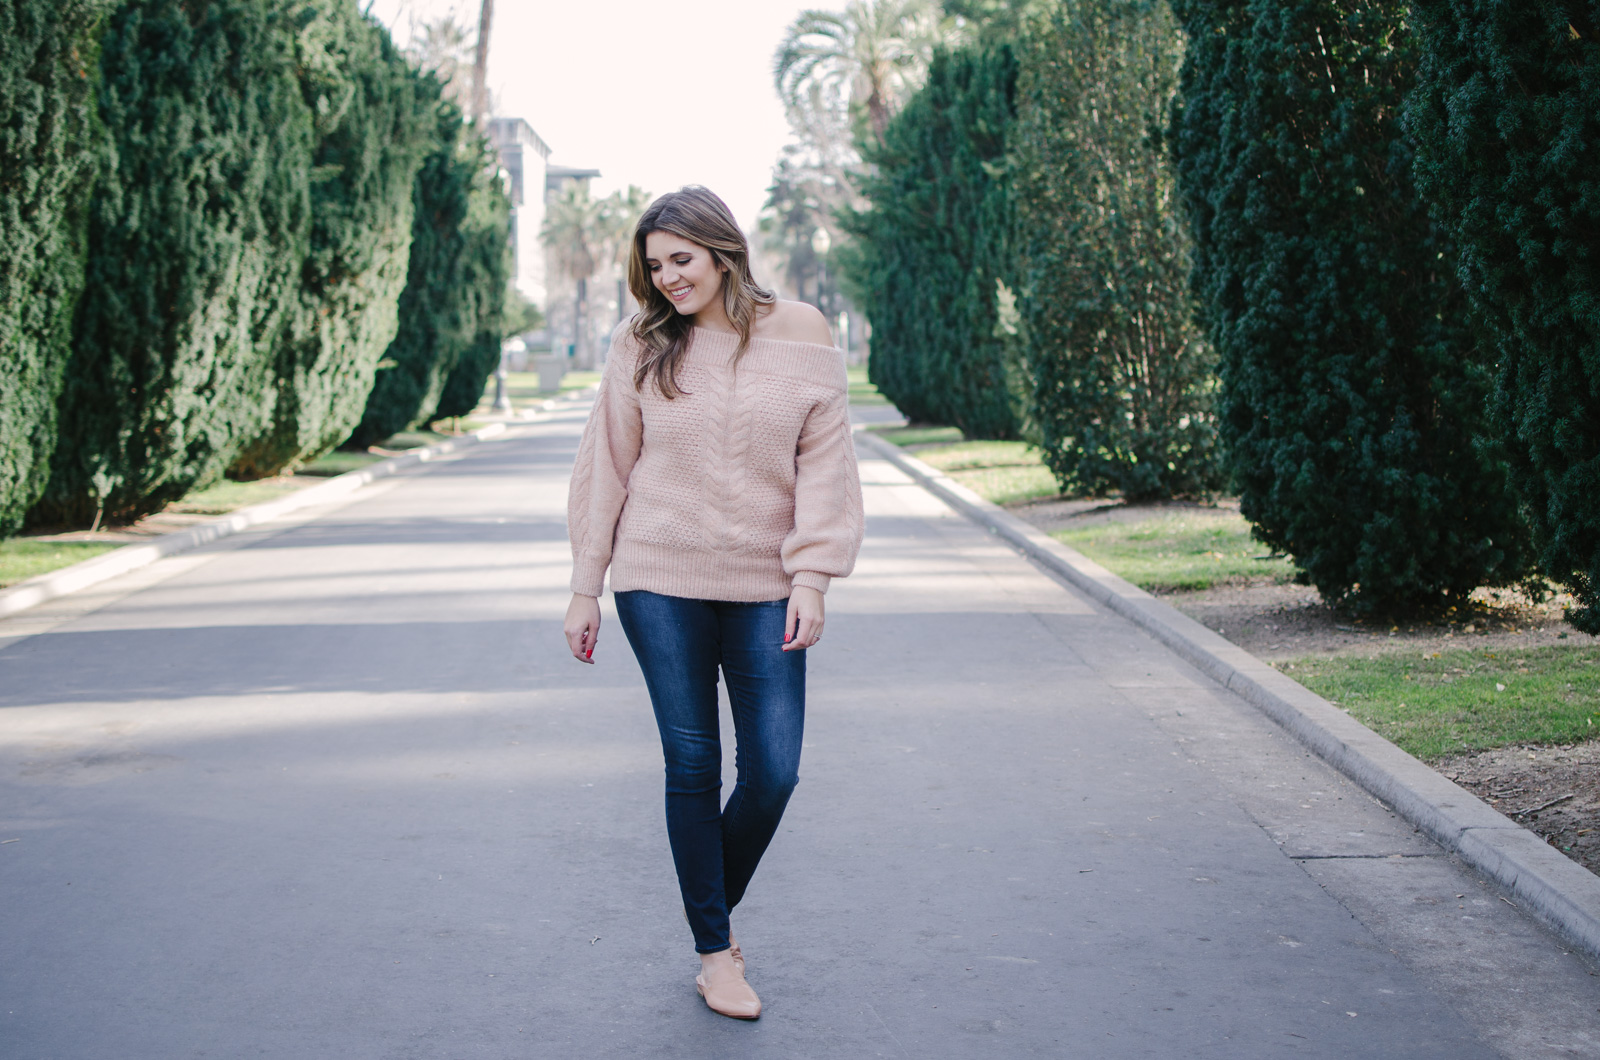 off the shoulder sweater outfit - how to wear an off shoulder sweater   Shop this look or see more outfit ideas at bylaurenm.com!